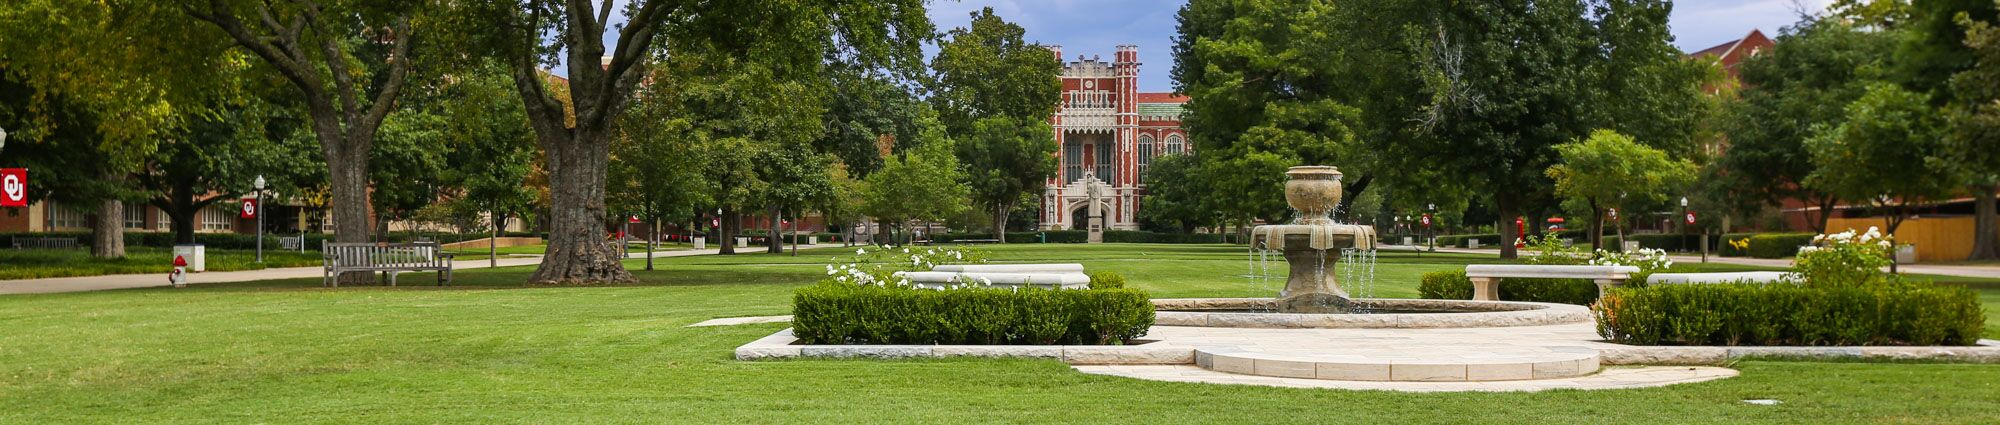 Landscape of University of Oklahoma Campus